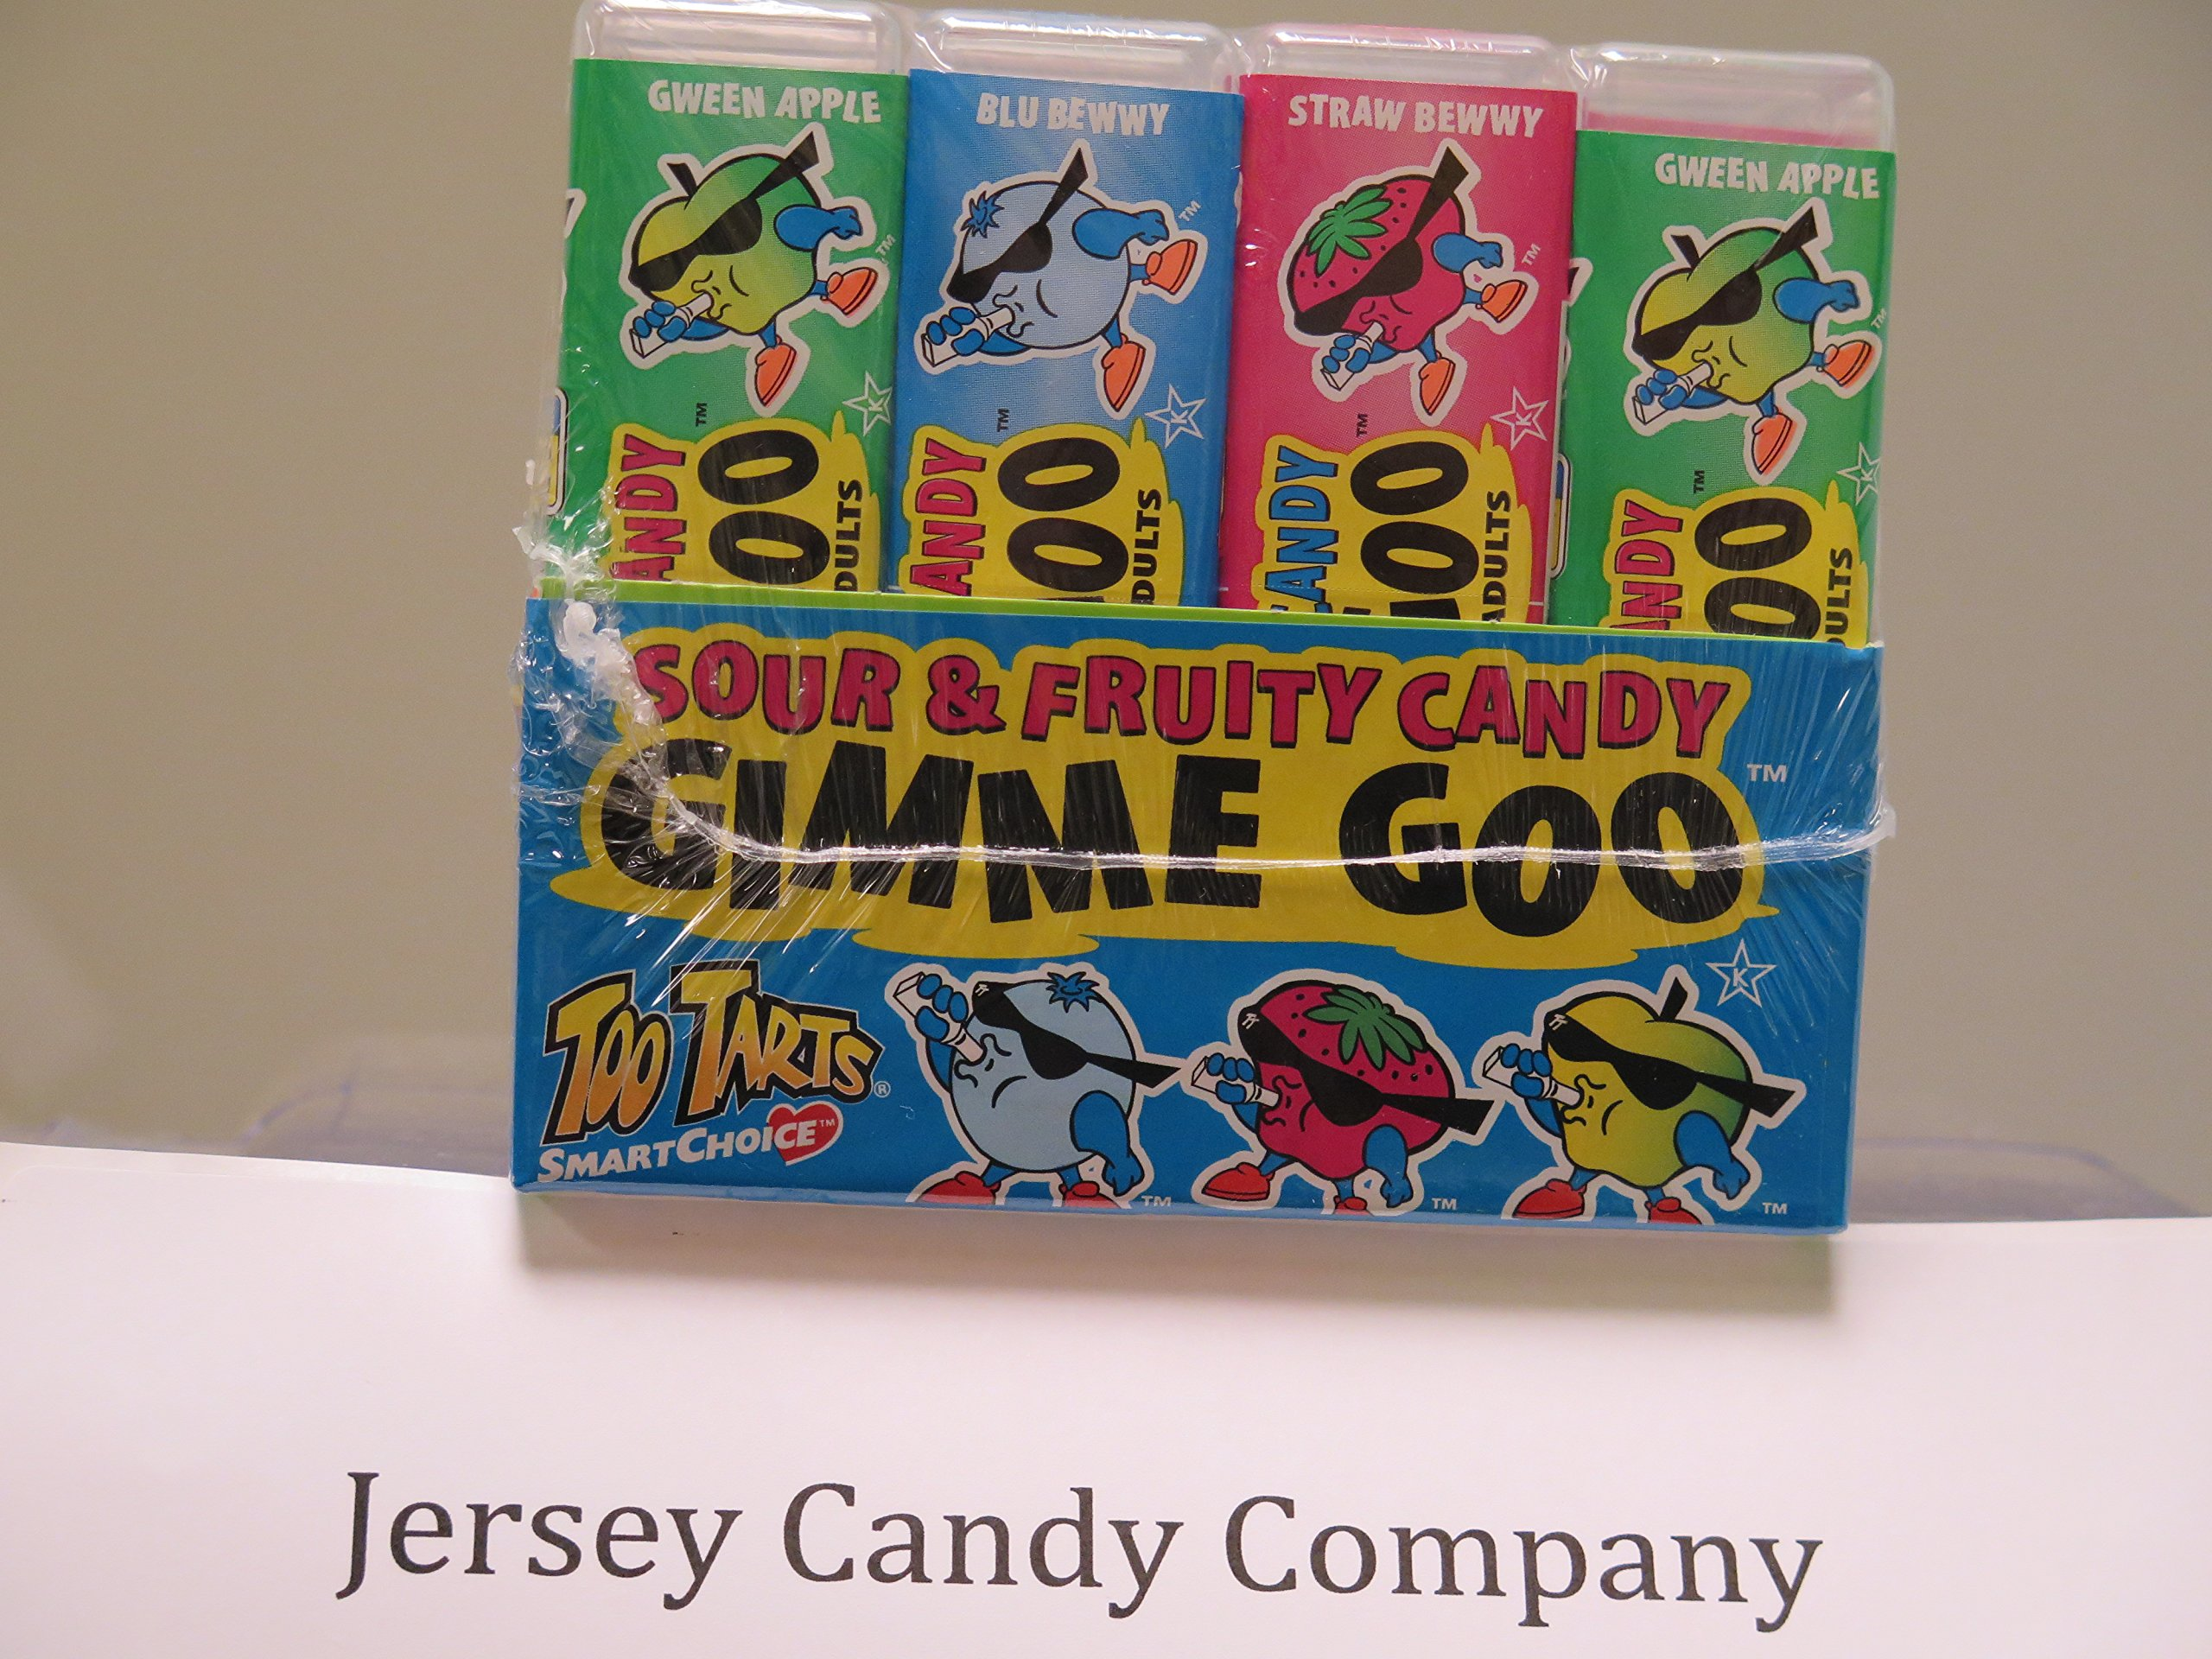 Gimme Goo Sour $ Fruity Candy 12 Count (Sugar Free) From Jersey Candy Company by Gimme Go